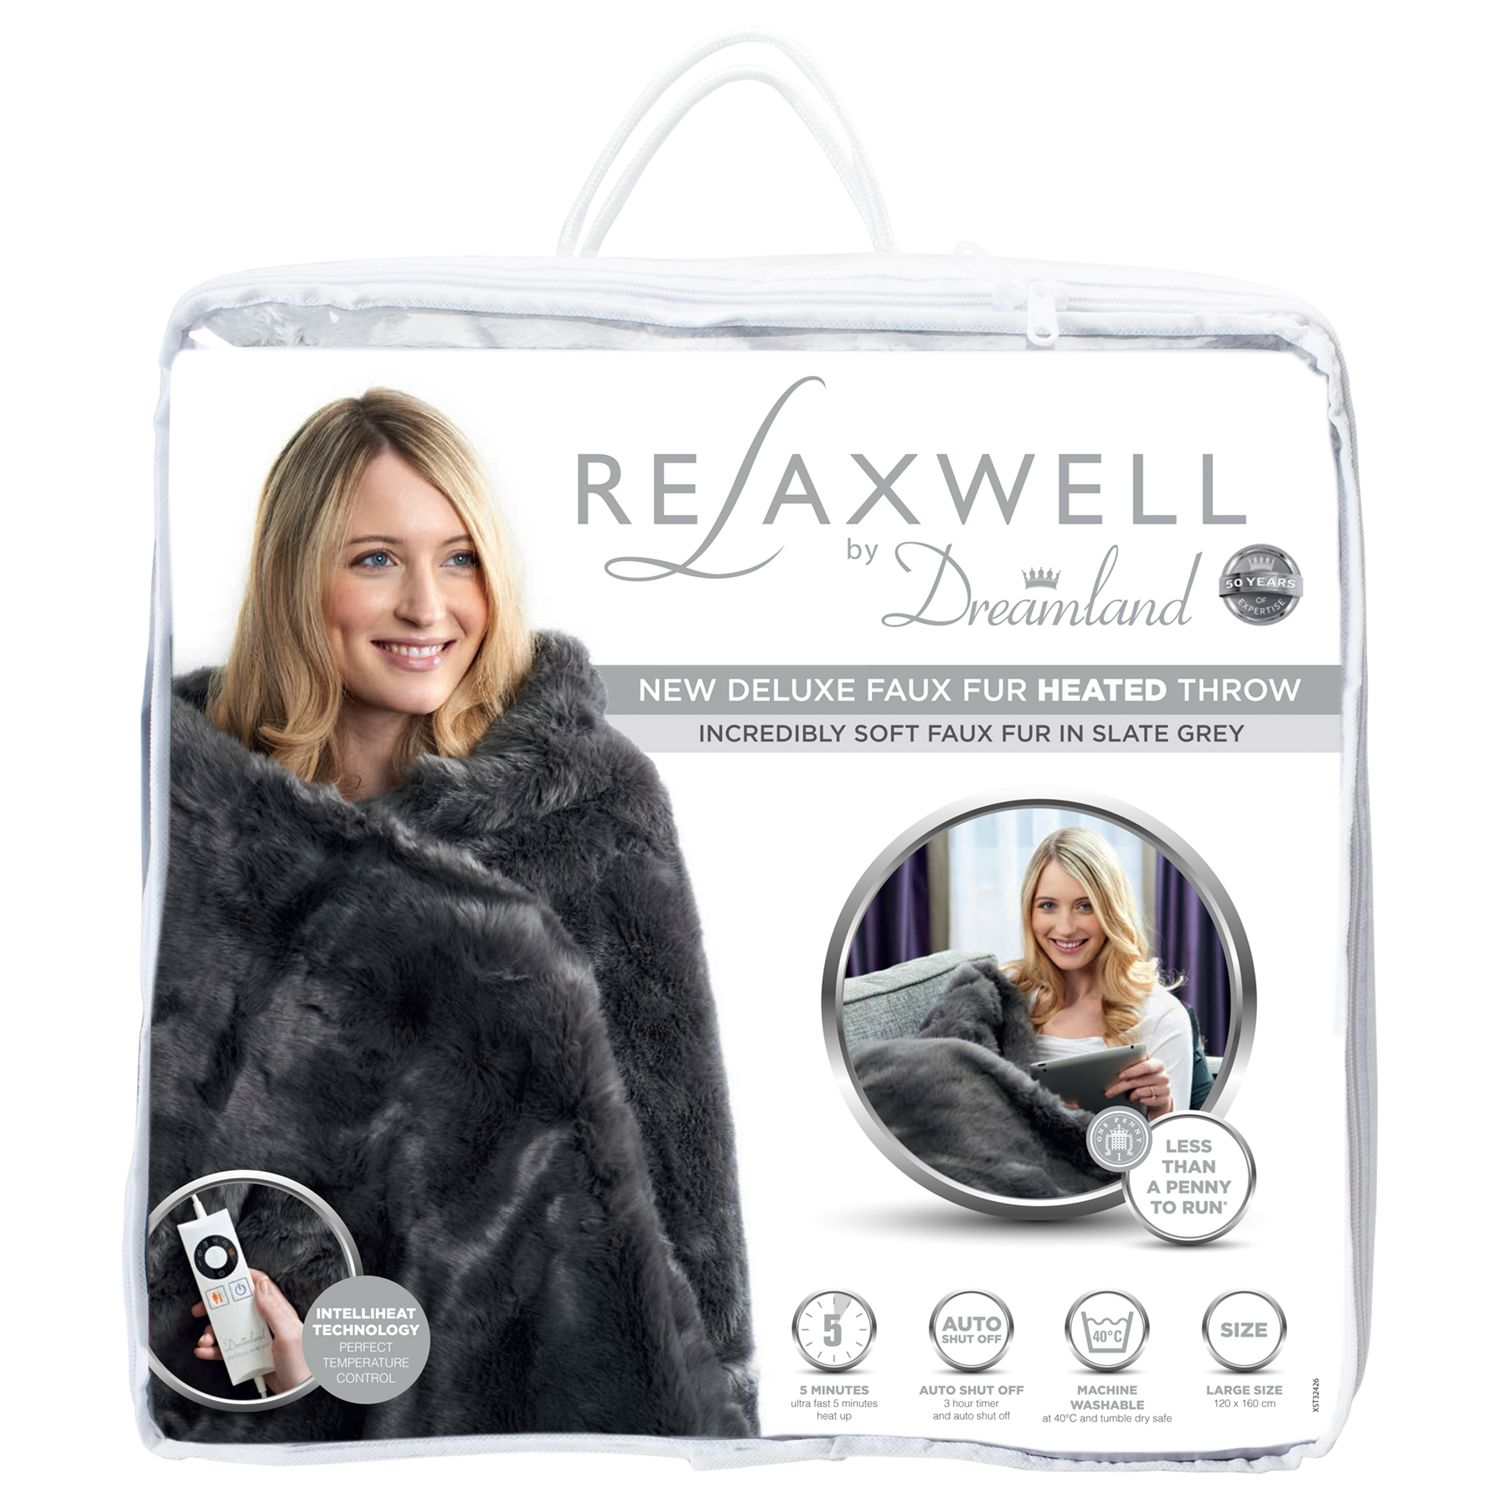 Dreamland Dreamland Relaxwell Deluxe Faux Fur Heated Throw Electric Blanket NEW, Slate Grey